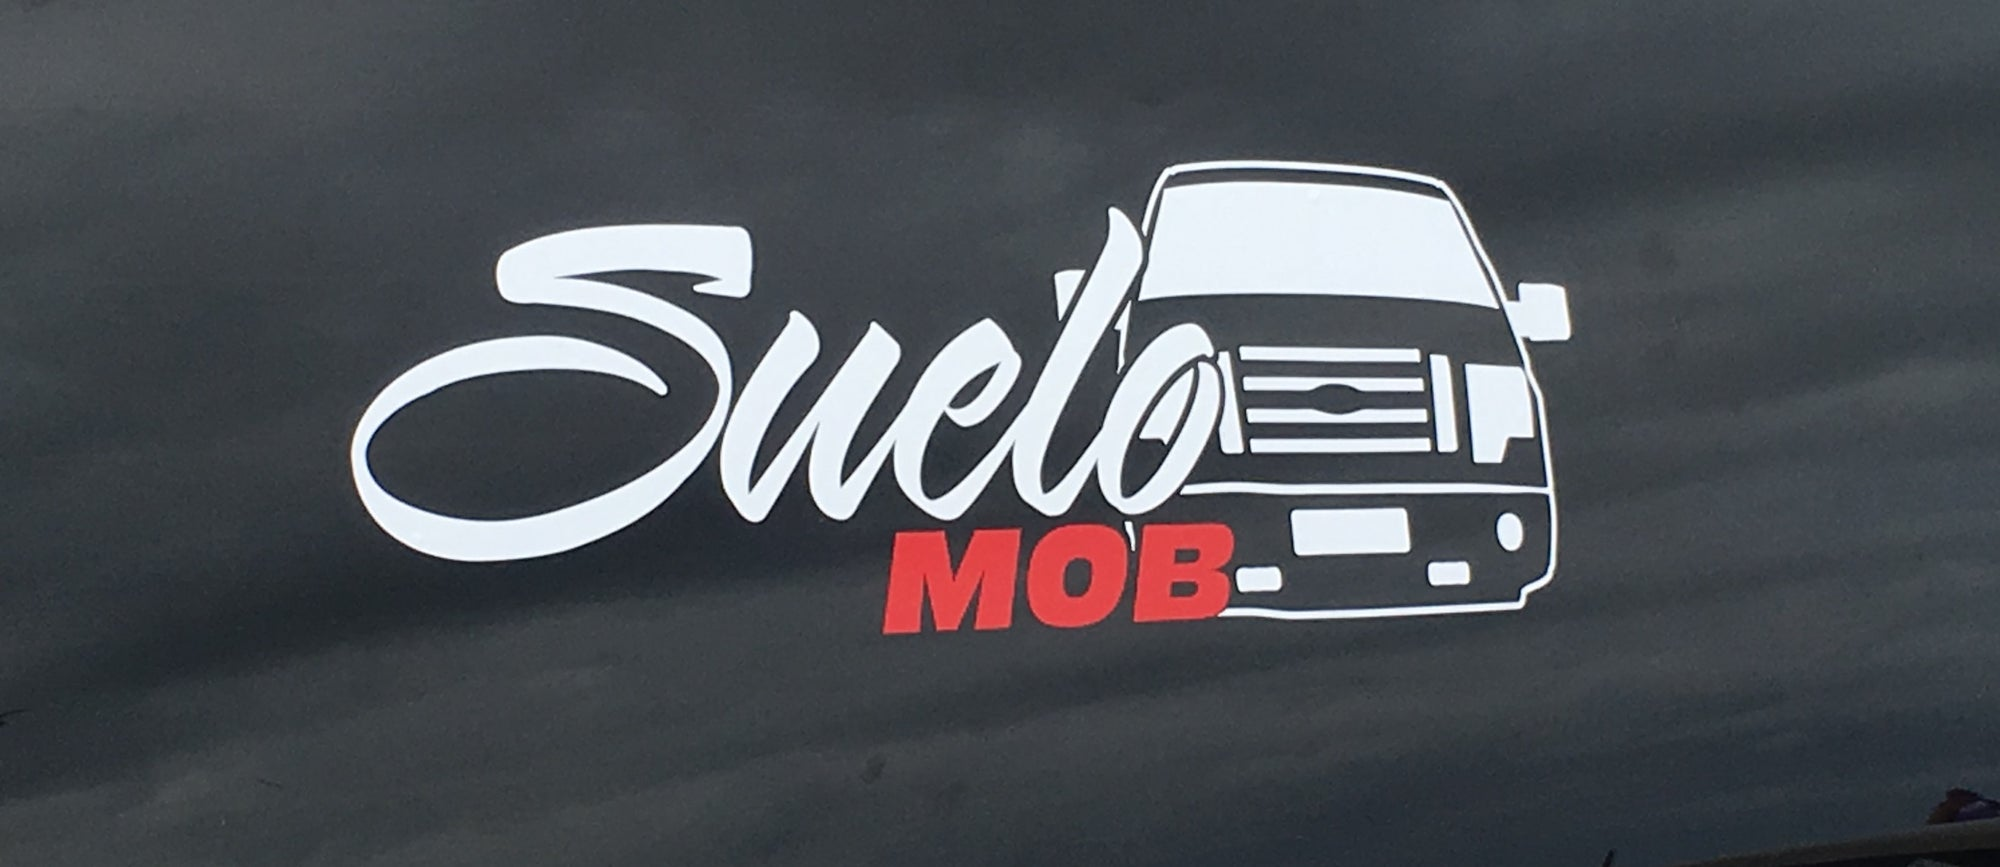 SueloMOB w/Ford Truck Decal